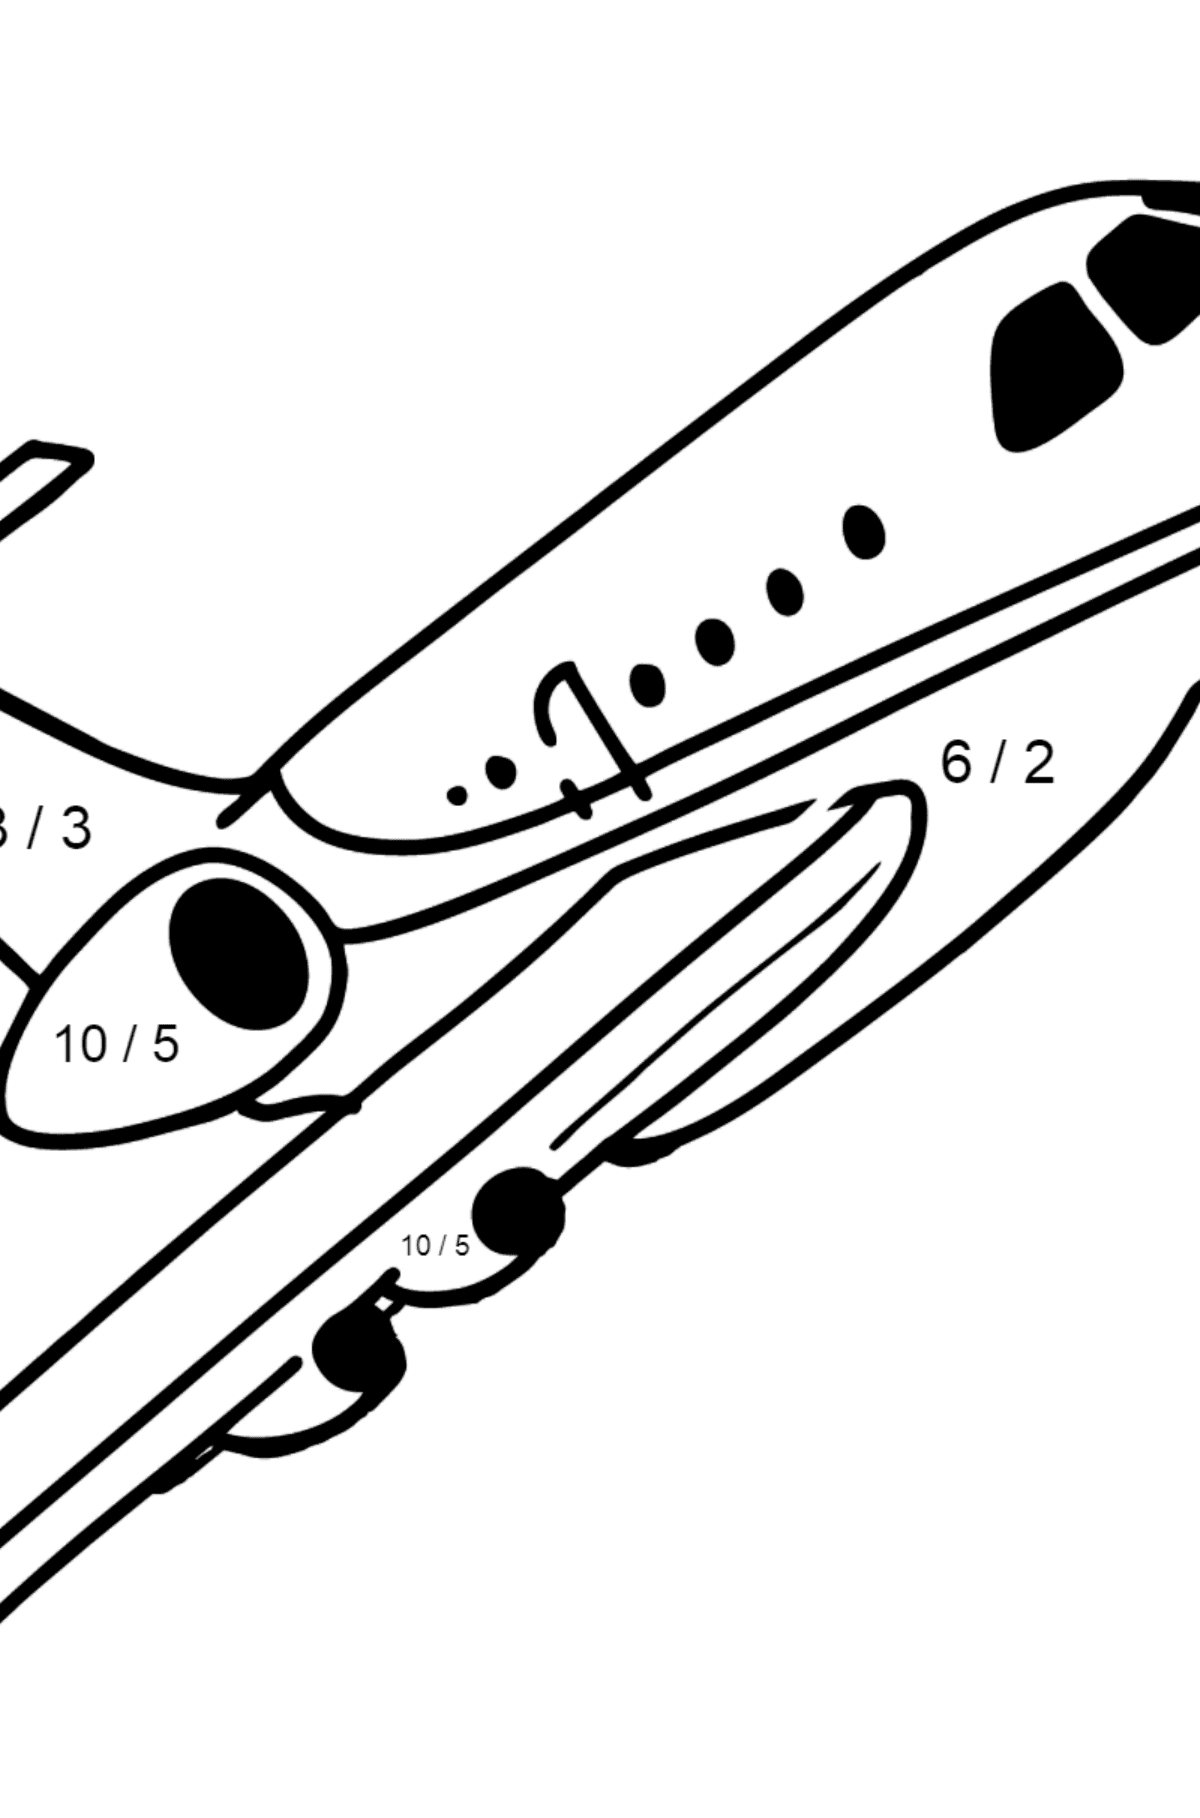 Airbus Airplane coloring page - Math Coloring - Division for Kids